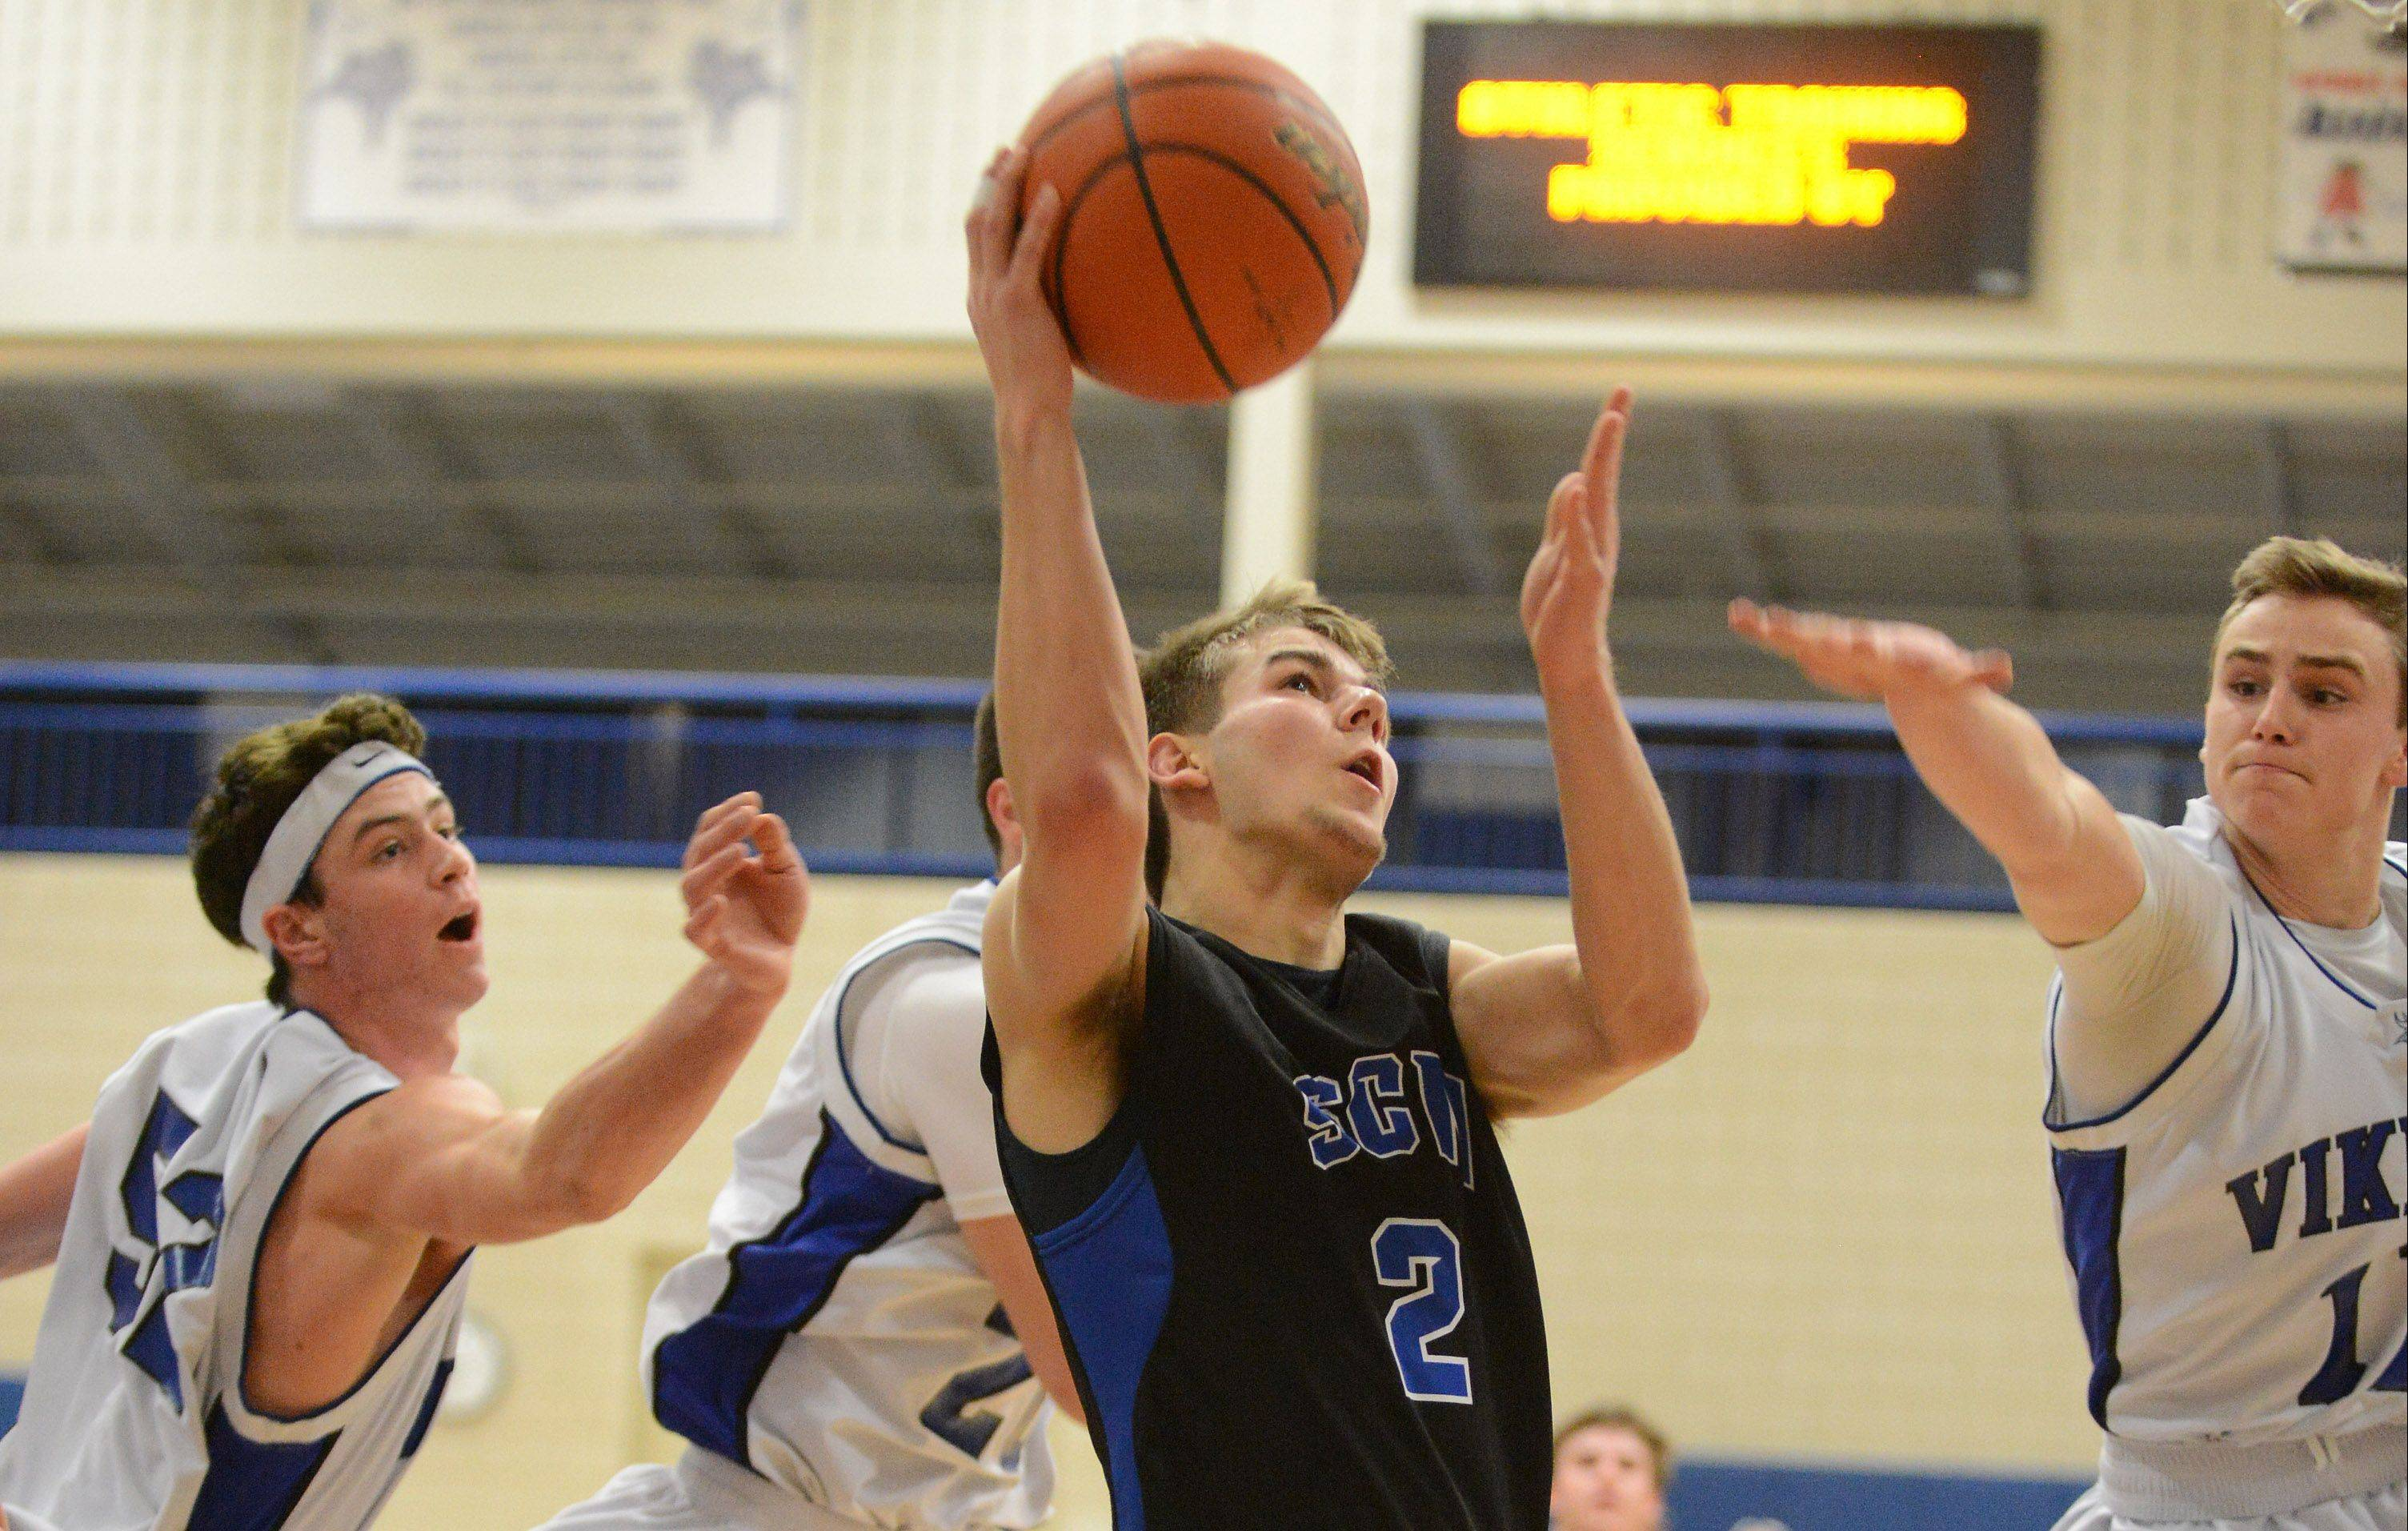 St. Charles North's Jake Ludwig (2) splits a trio of Geneva defenders to get a shot up during Friday's game in Geneva.